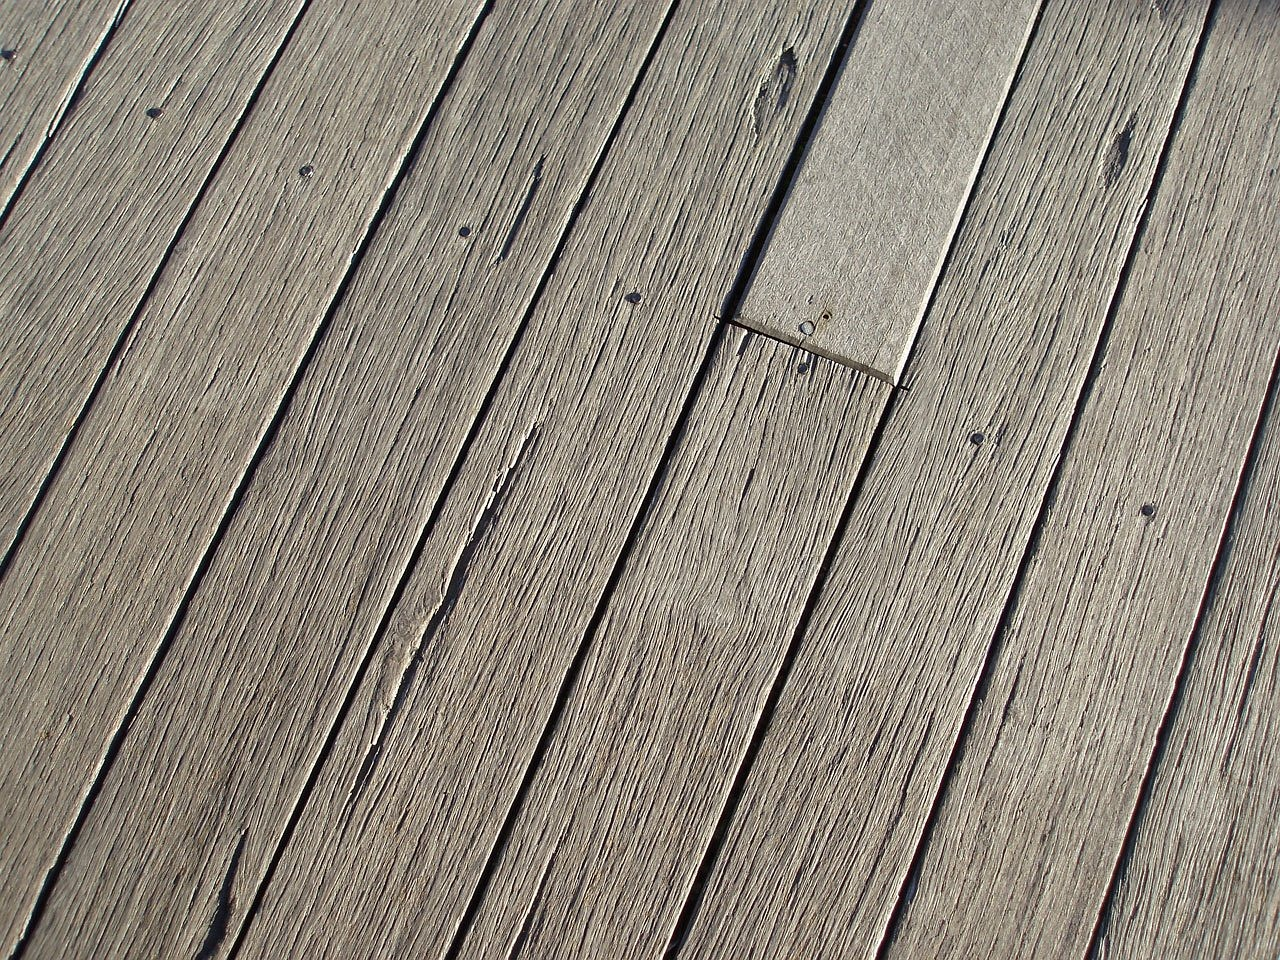 Close-up of wood deck.